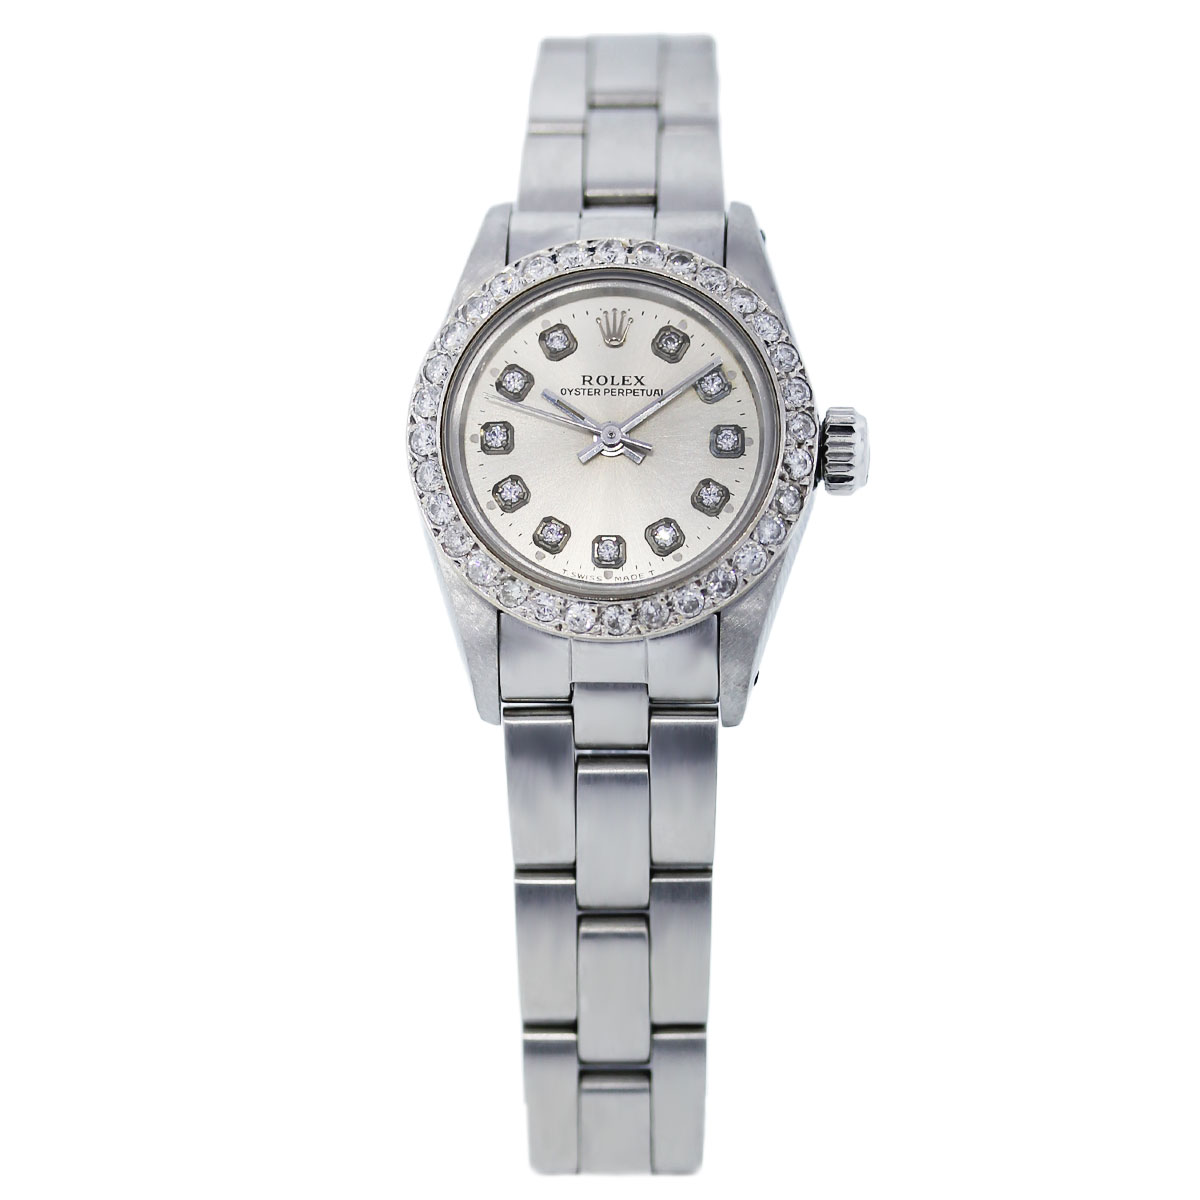 Rolex Oyster Perpetual Diamond Ladies Watch